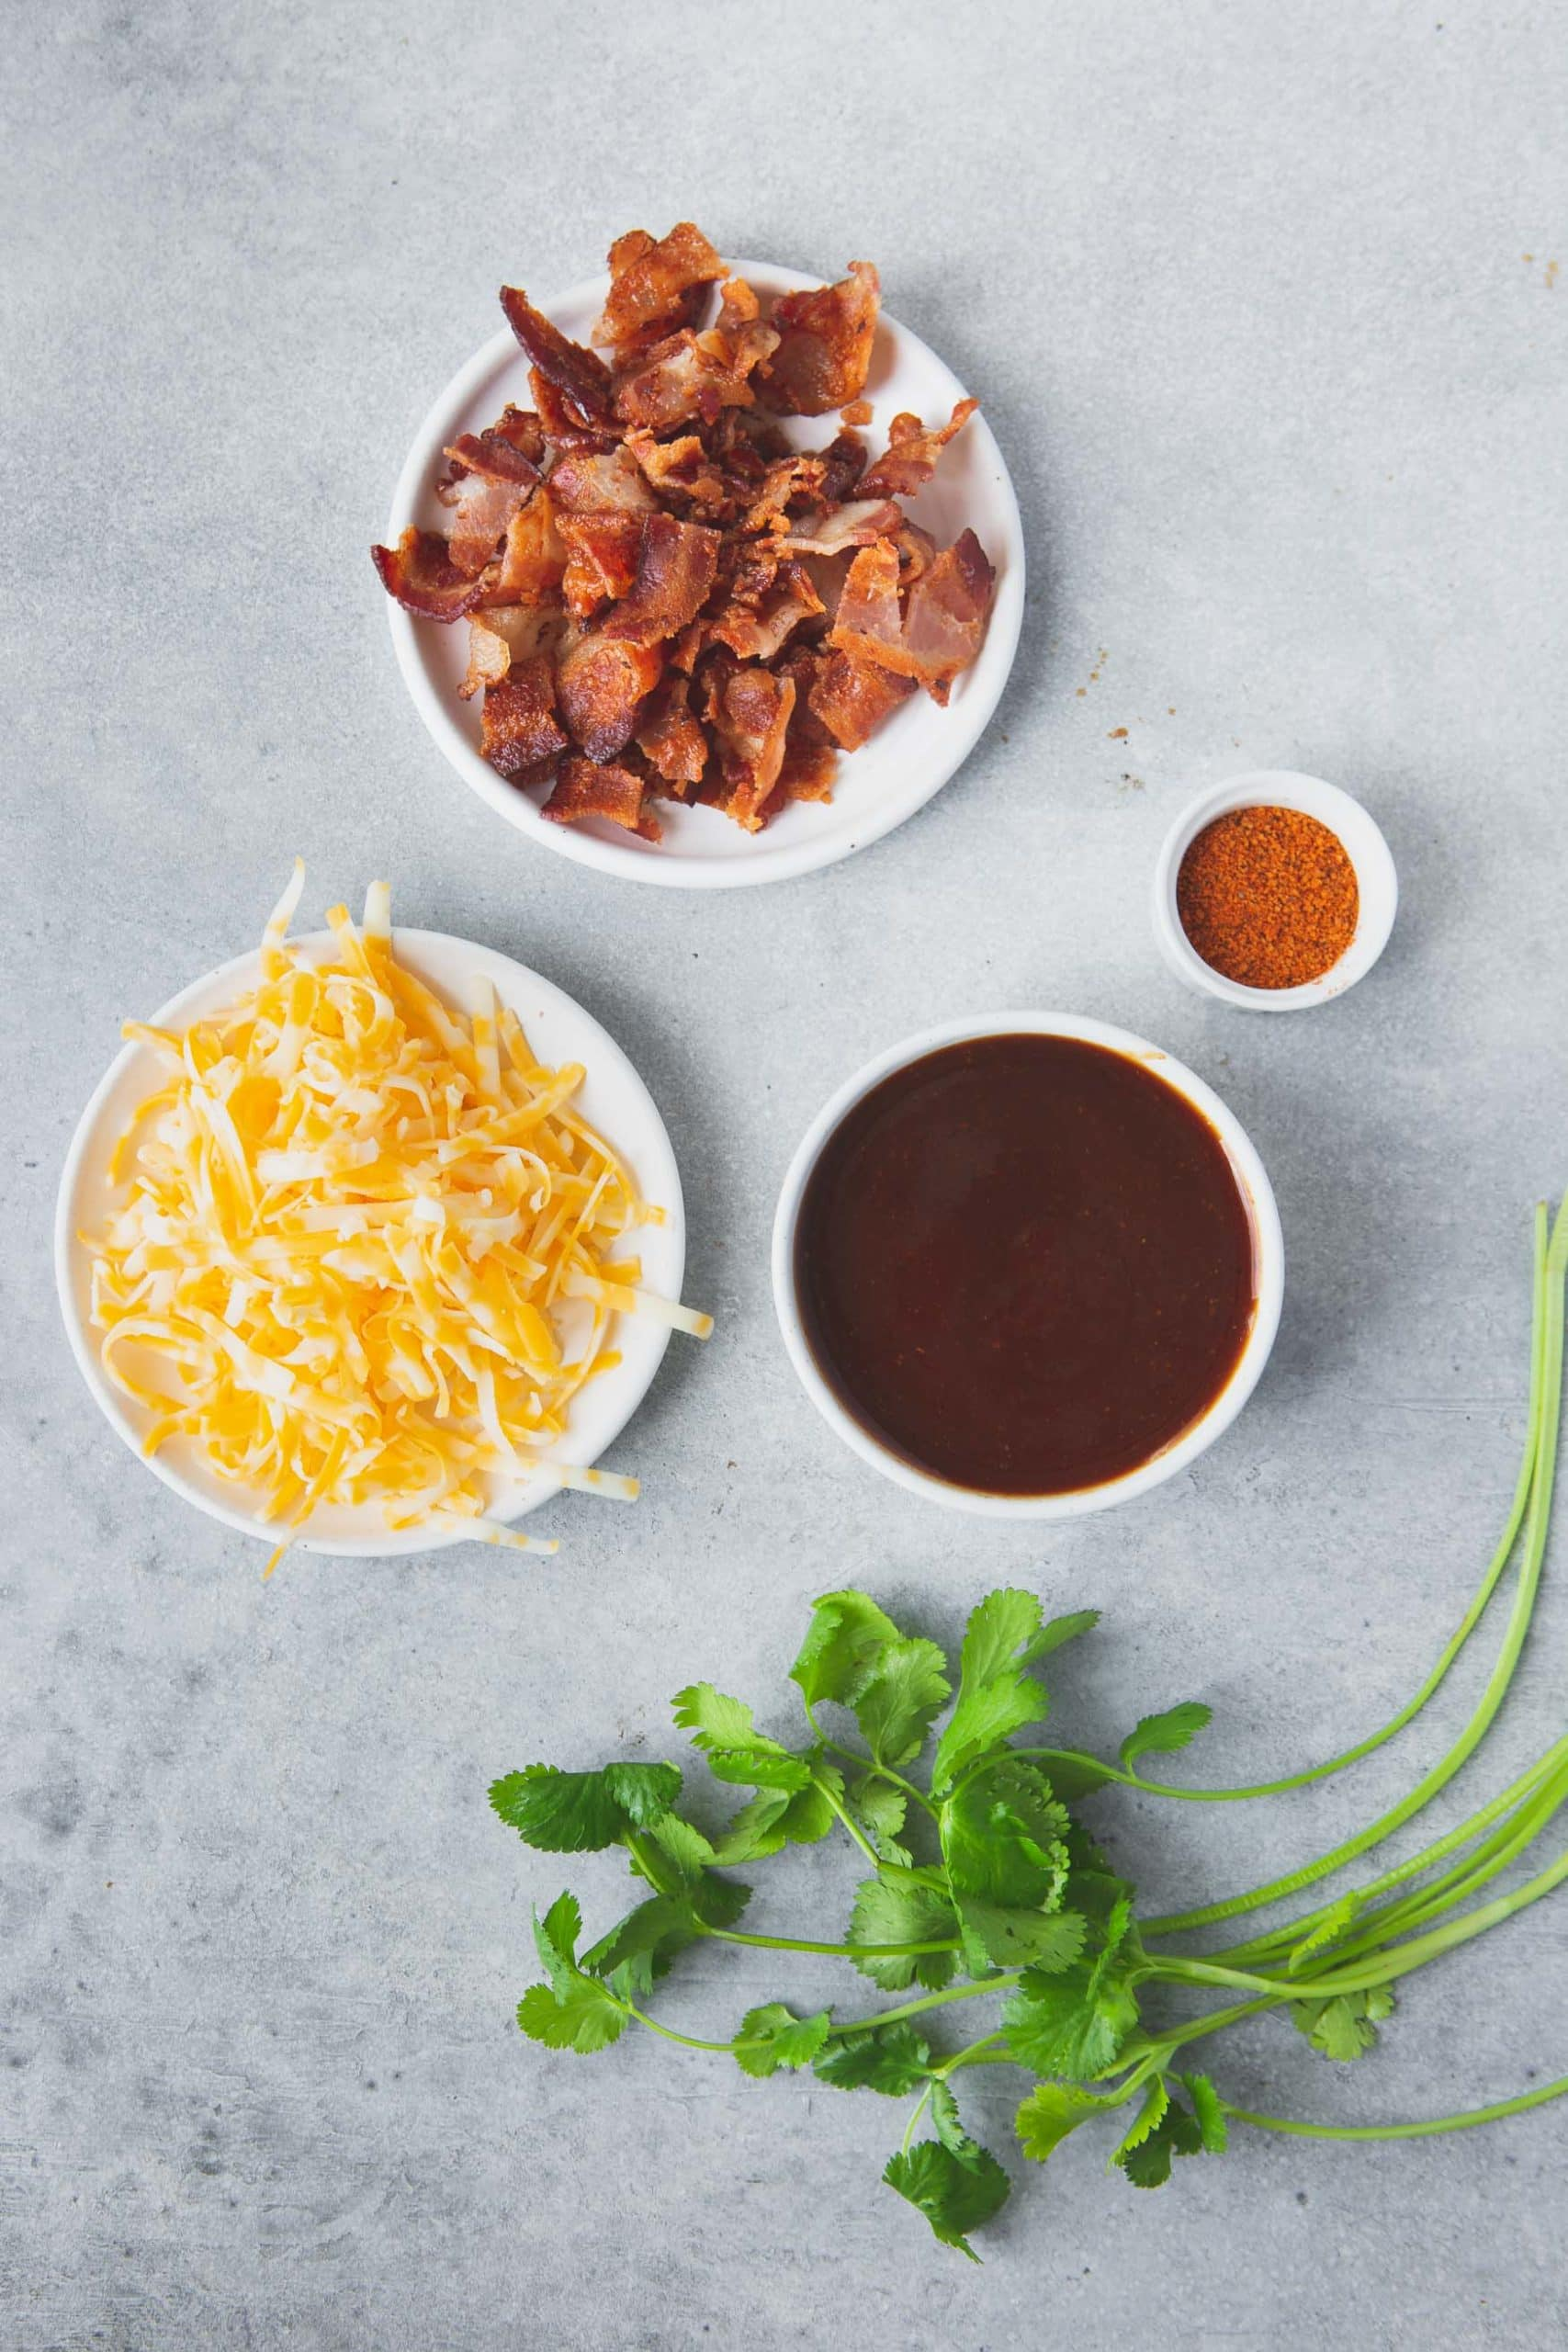 Containers of ingredients for cheesy bbq chicken with bacon. The bowls contain cheese, bbq sauce, bacon and spices.